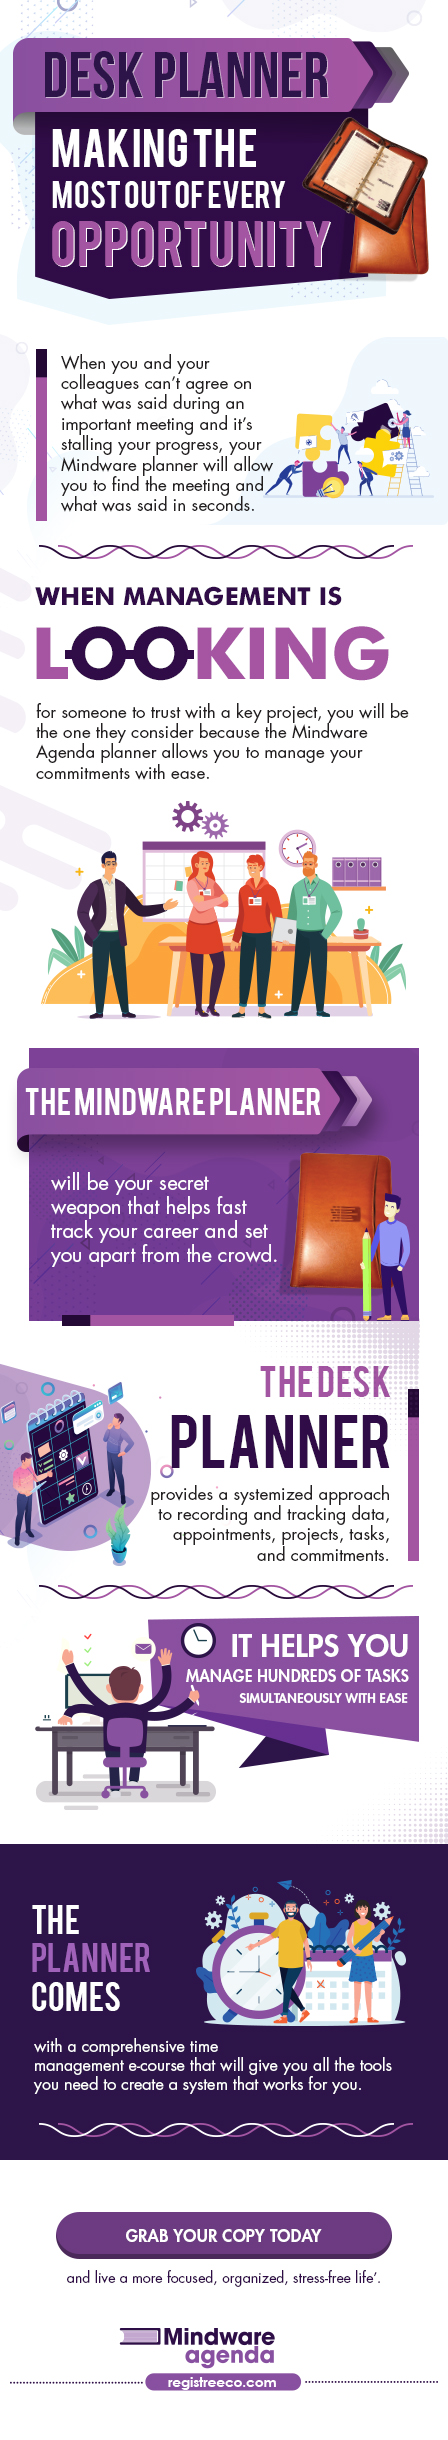 Infographic camparing the top three professional comprehensive daily refillable planners.